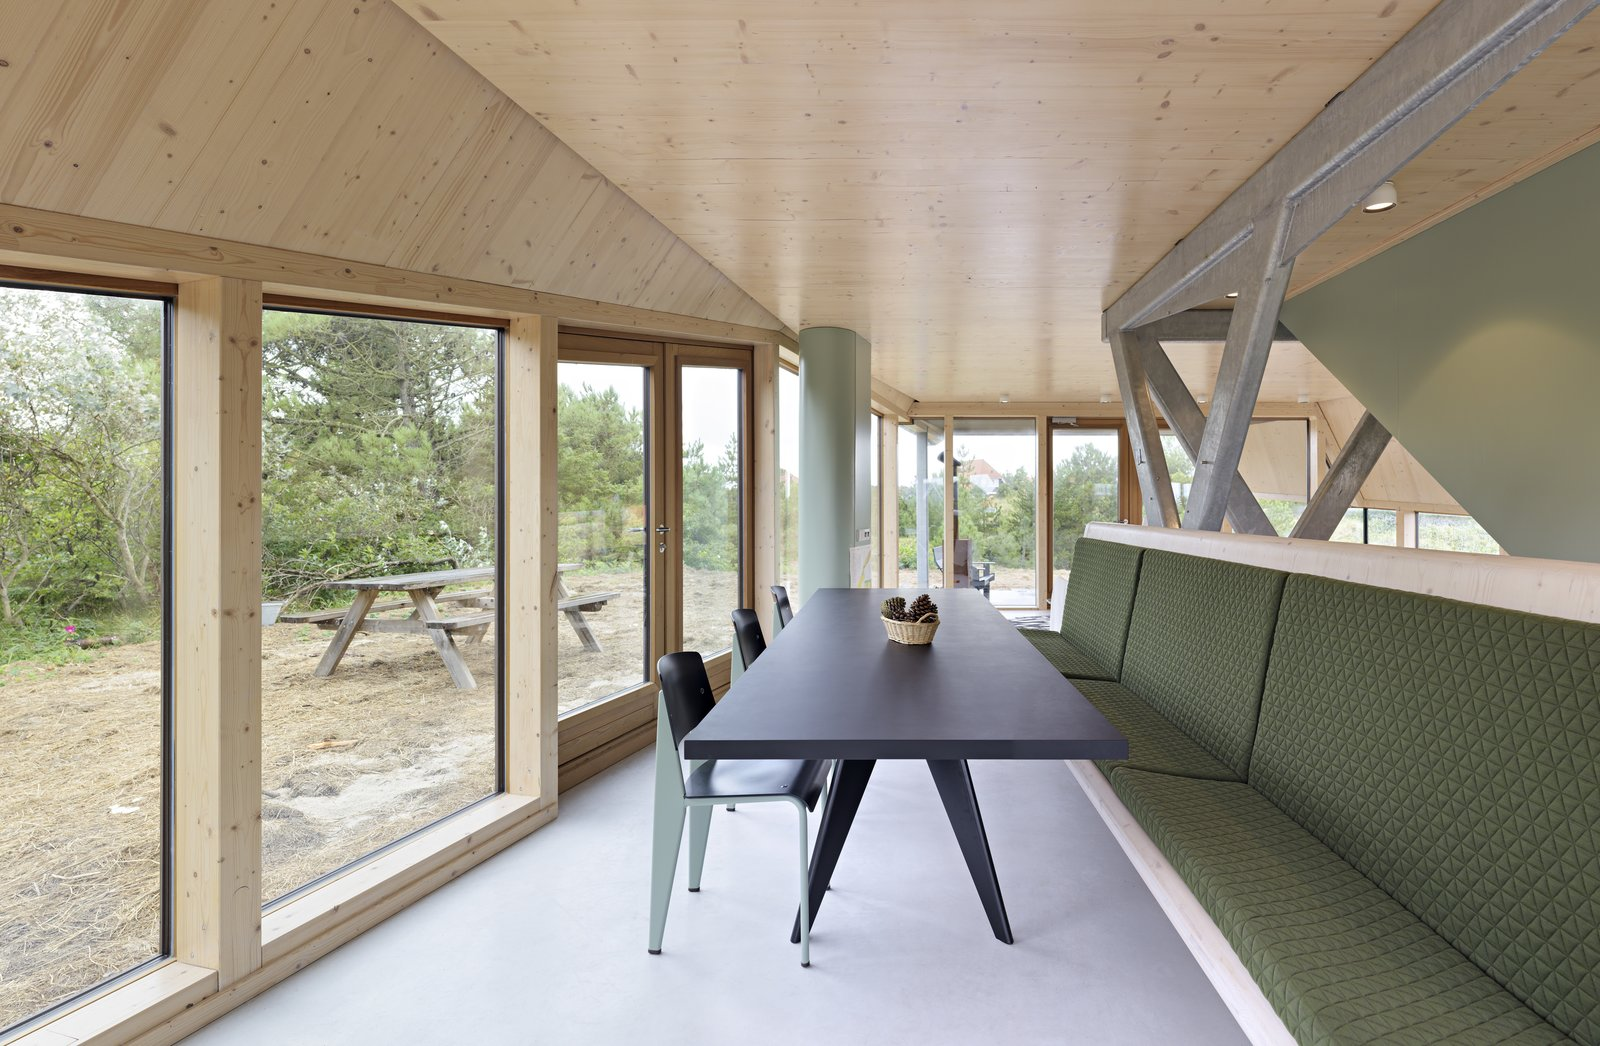 Dining Room, Bench, Table, Chair, and Ceiling Lighting A dining table and bench that can accommodate the large family who use the summer home.   Photo 2 of 11 in A Tent-Shaped Home in the Netherlands Crouches Between Natural Dunes